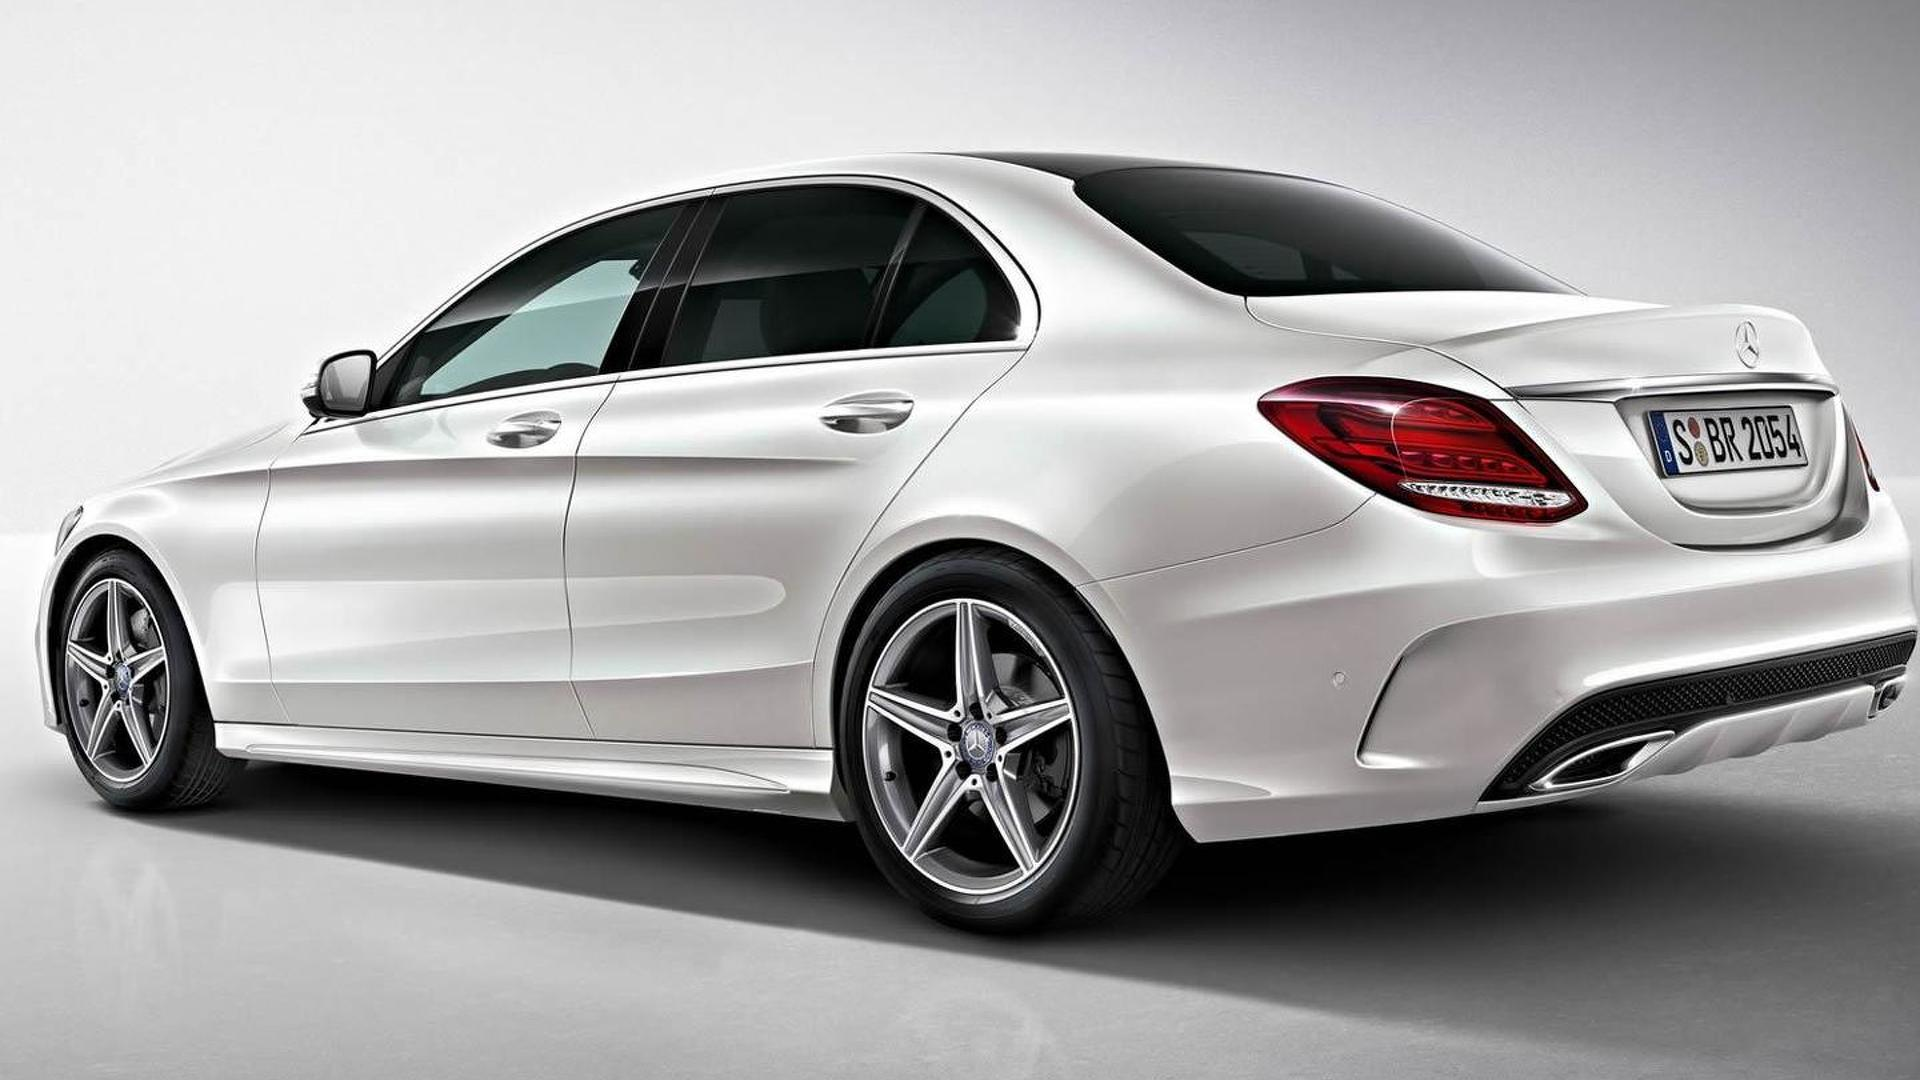 591ca0207b83 2014 Mercedes-Benz C-Class AMG Line photos and details released